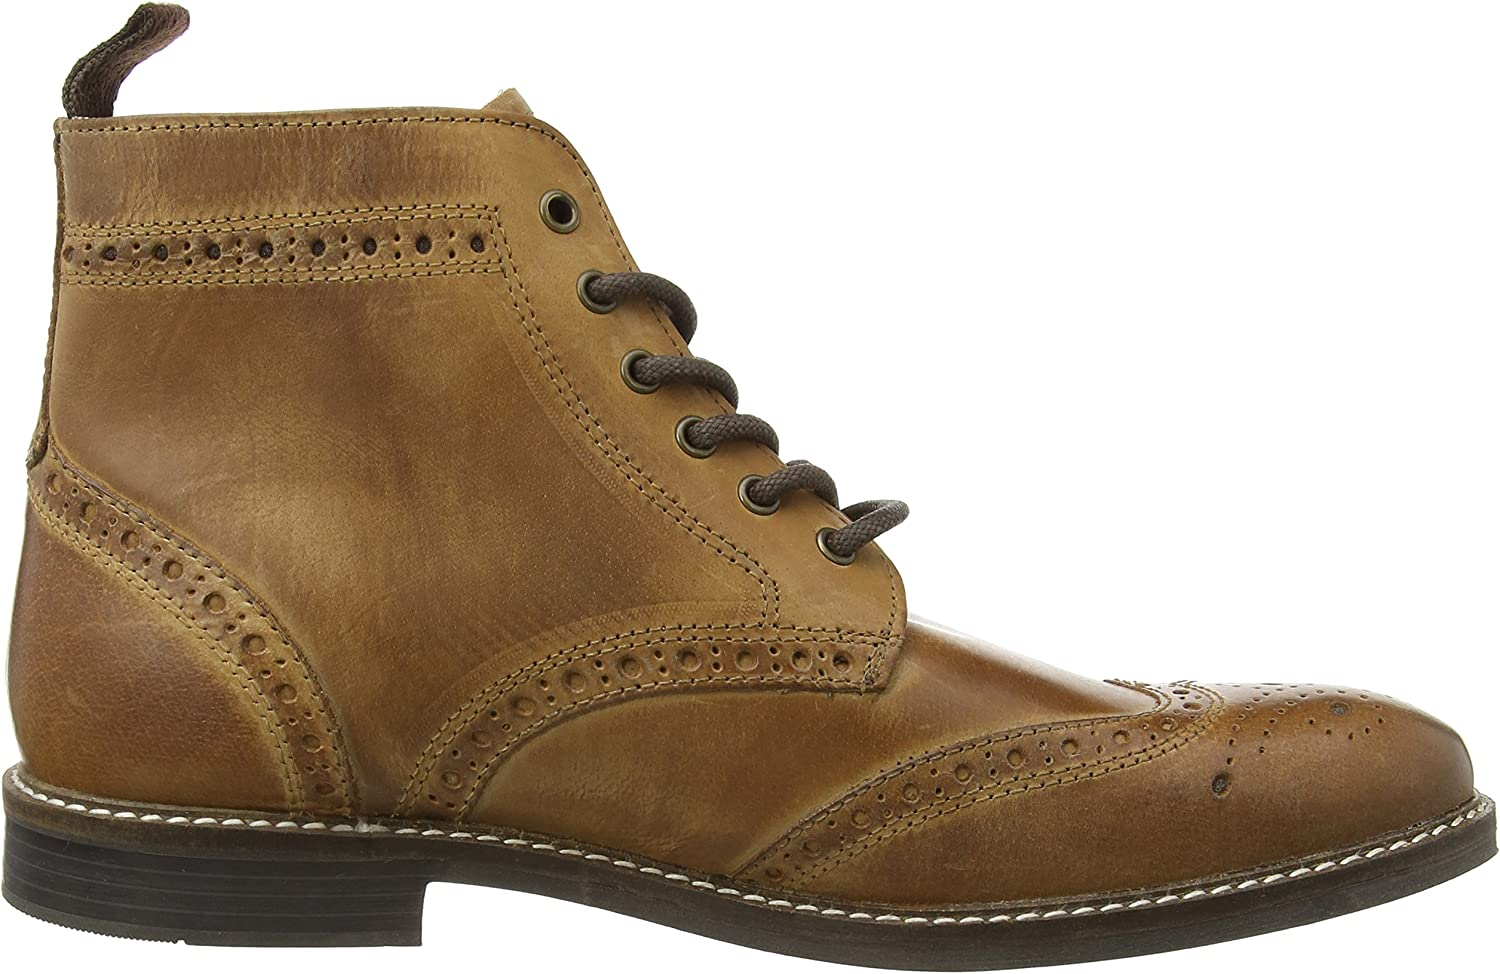 Red Tape Mens Ankle Boots